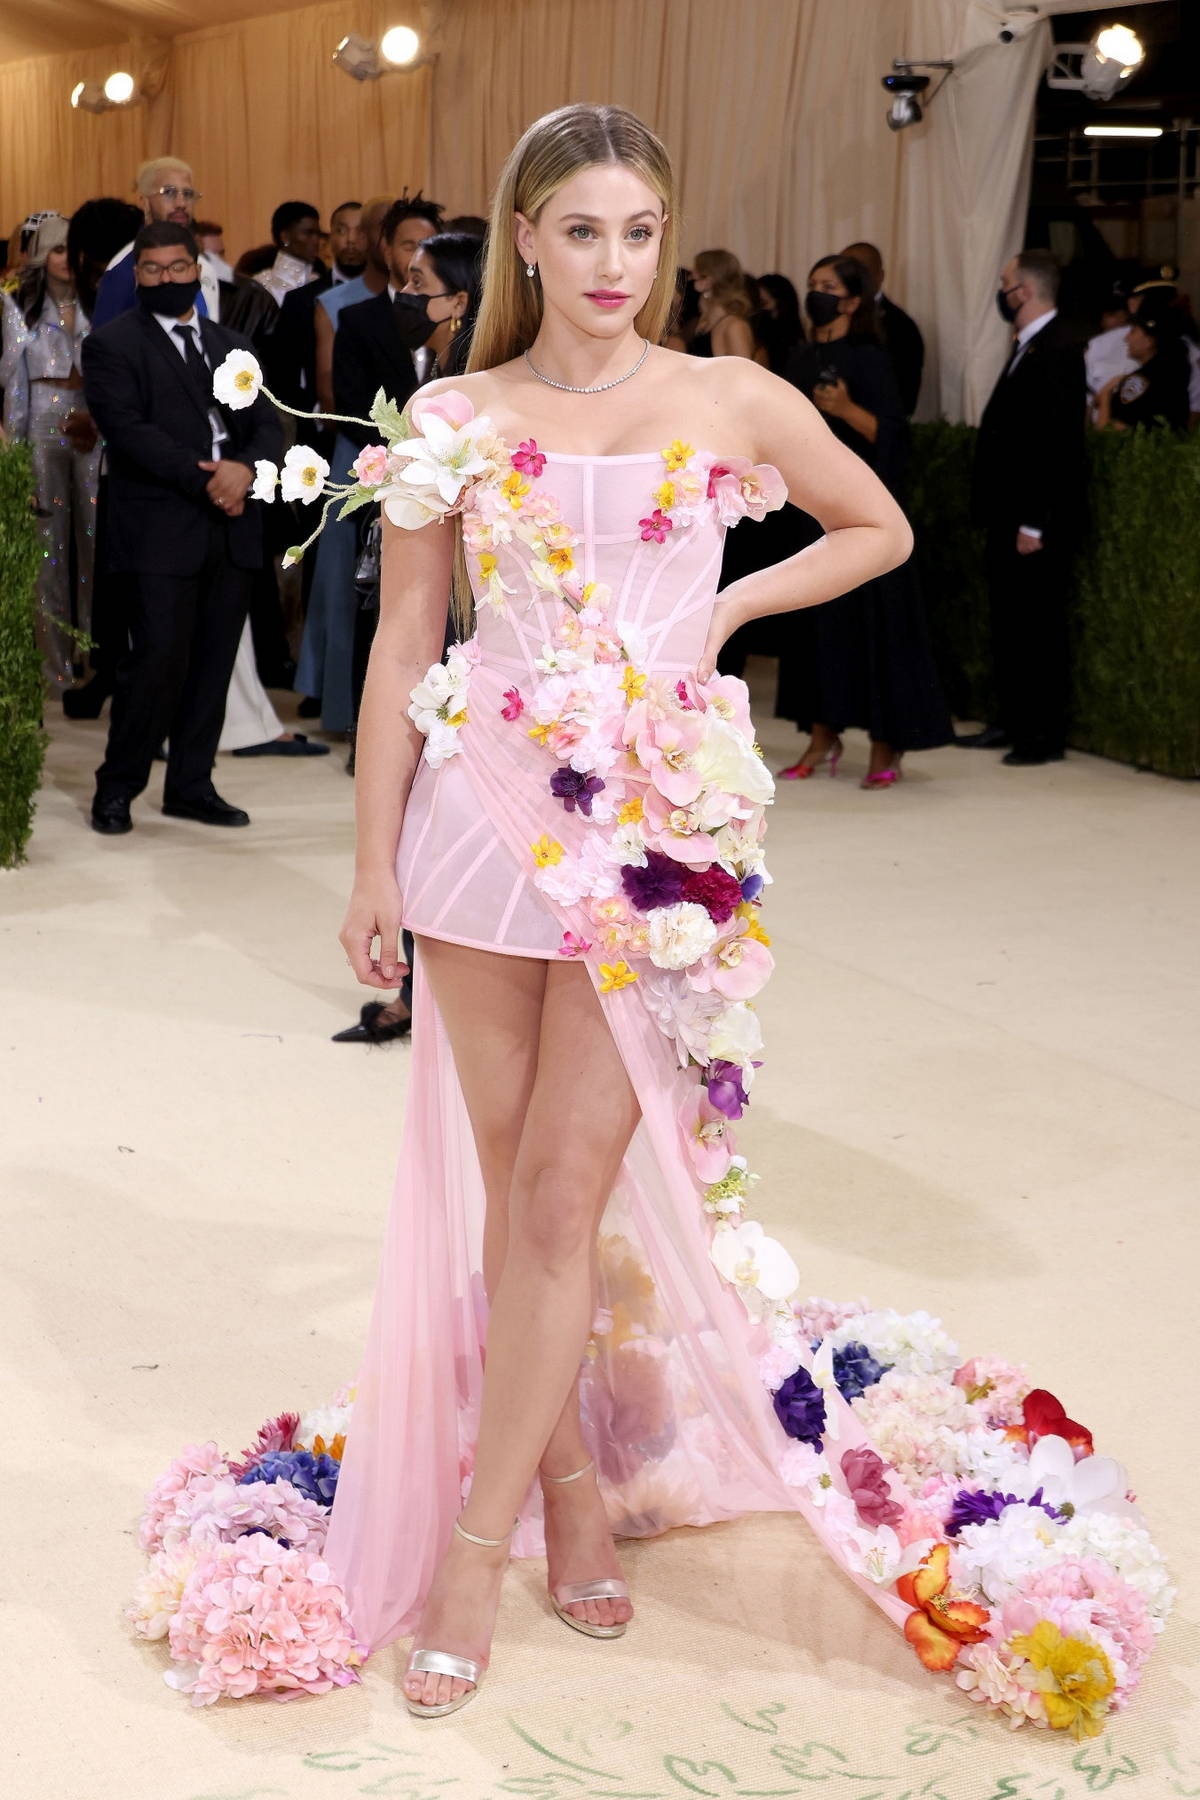 Lili Reinhart attends The Met Gala Celebrating In America: A Lexicon Of Fashion at Metropolitan Museum of Art in New York City